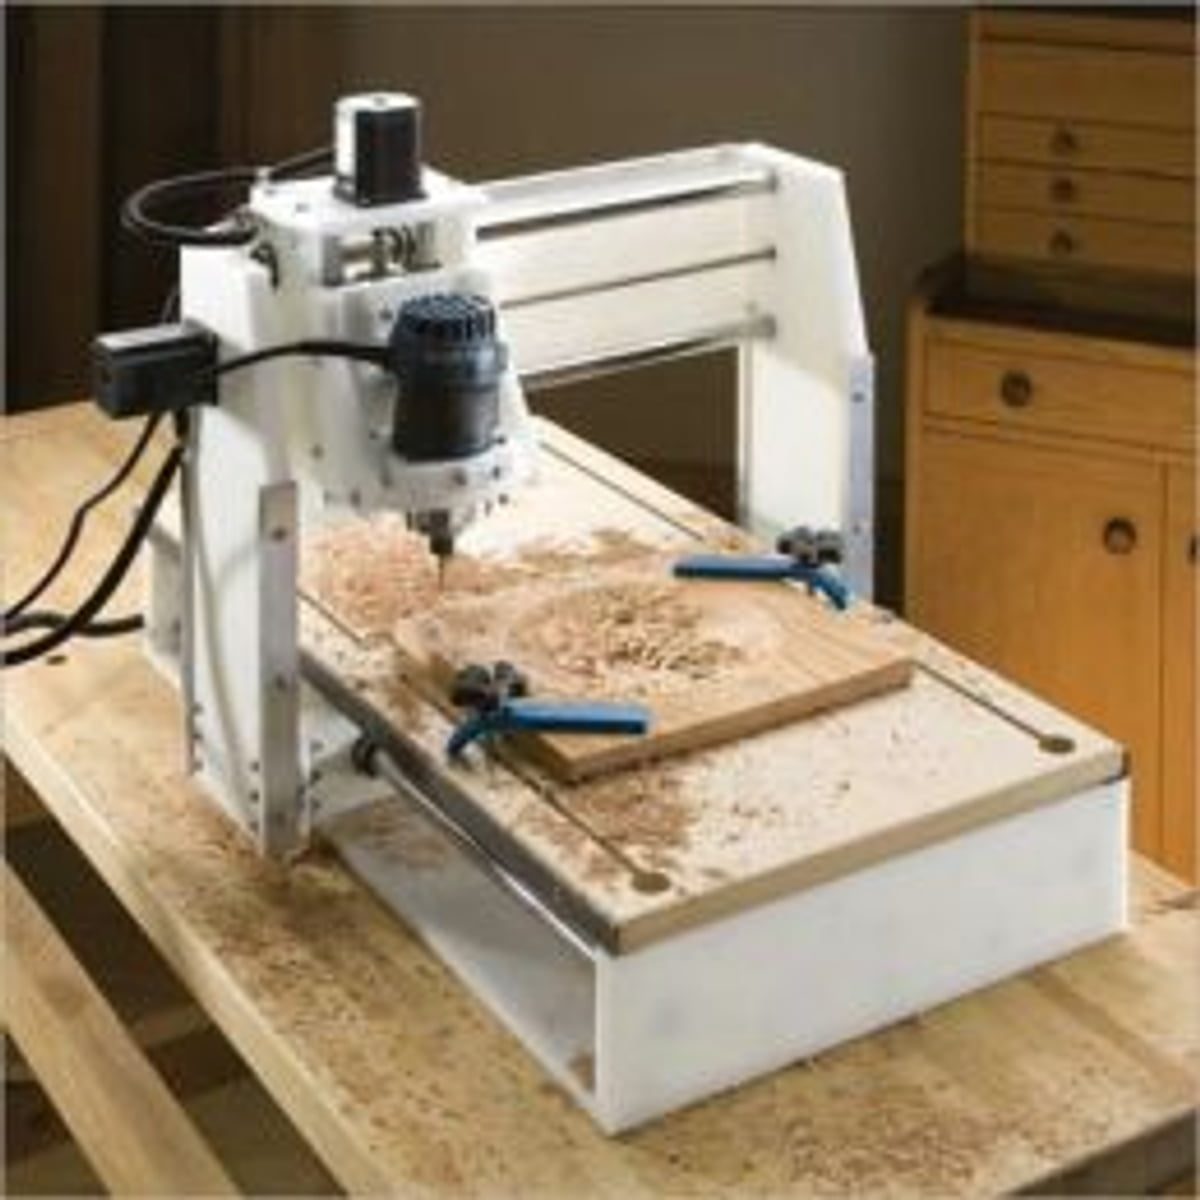 Cnc Woodworking For Beginners Ebook By Alene Edelson 1230000116353 Rakuten Kobo United States